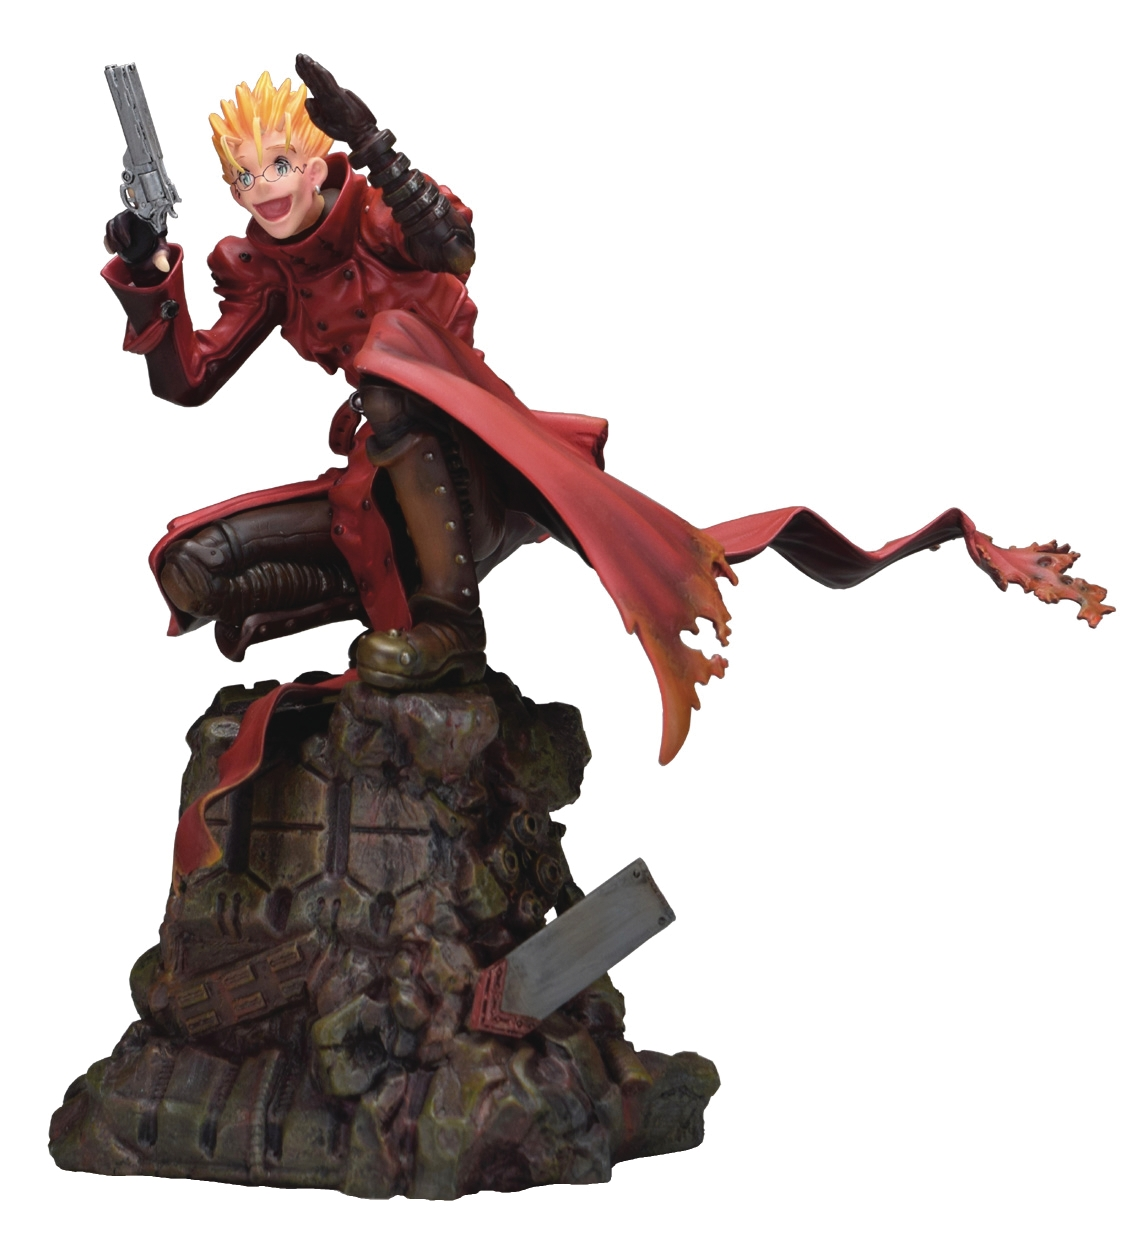 Trigun Badlands Rumble: Vash (1/6 Scale Polystone Figure)